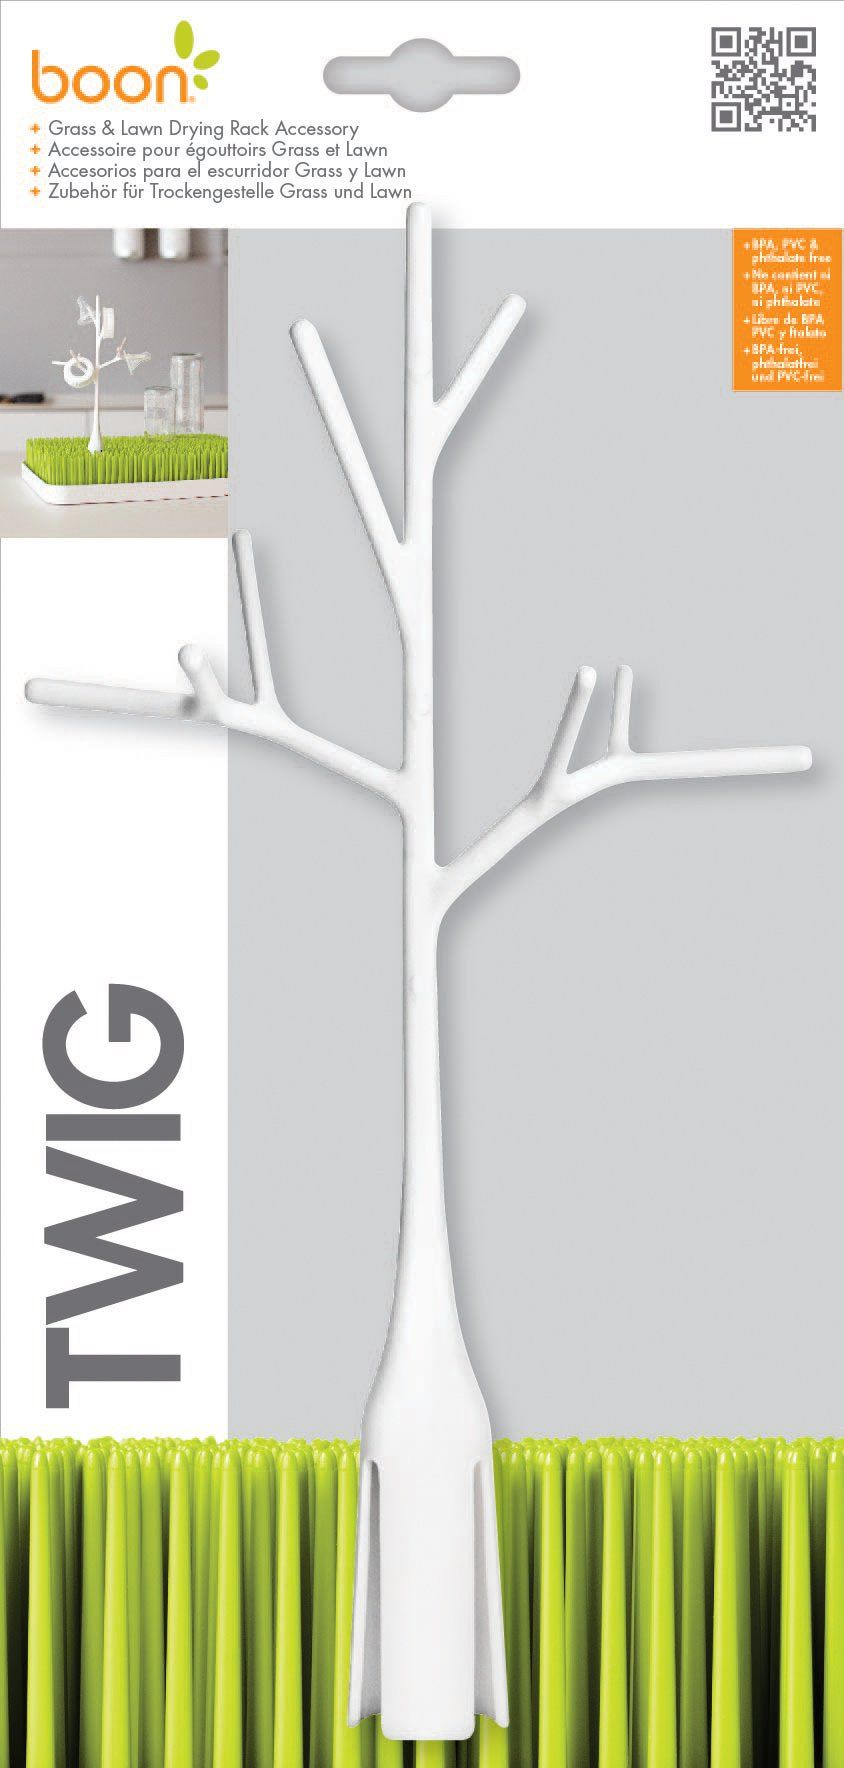 Twig Grass Lawn Drying Rack Accessory Warm Gray Baby Bottle Cleaning Brushes